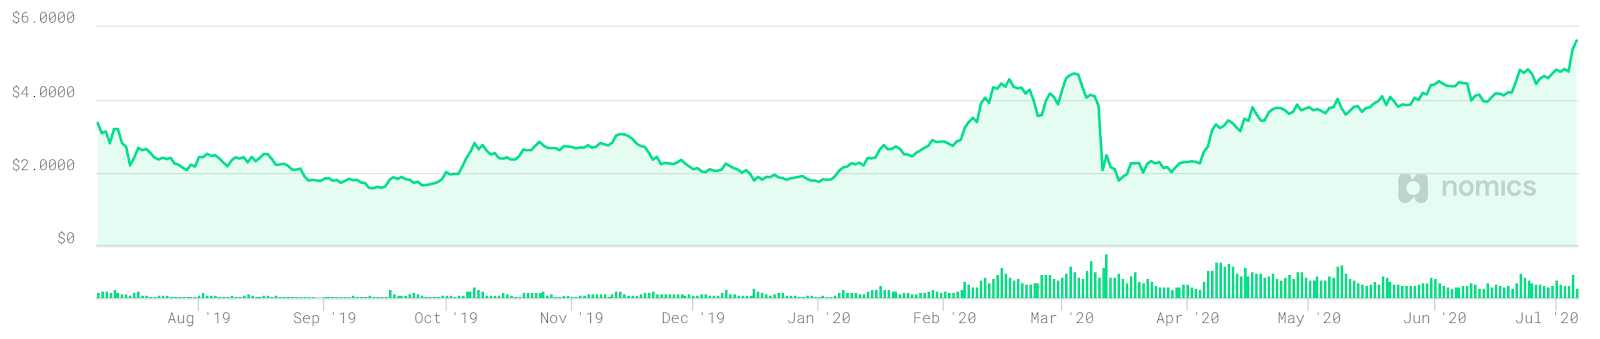 LINK price over the past 12 months